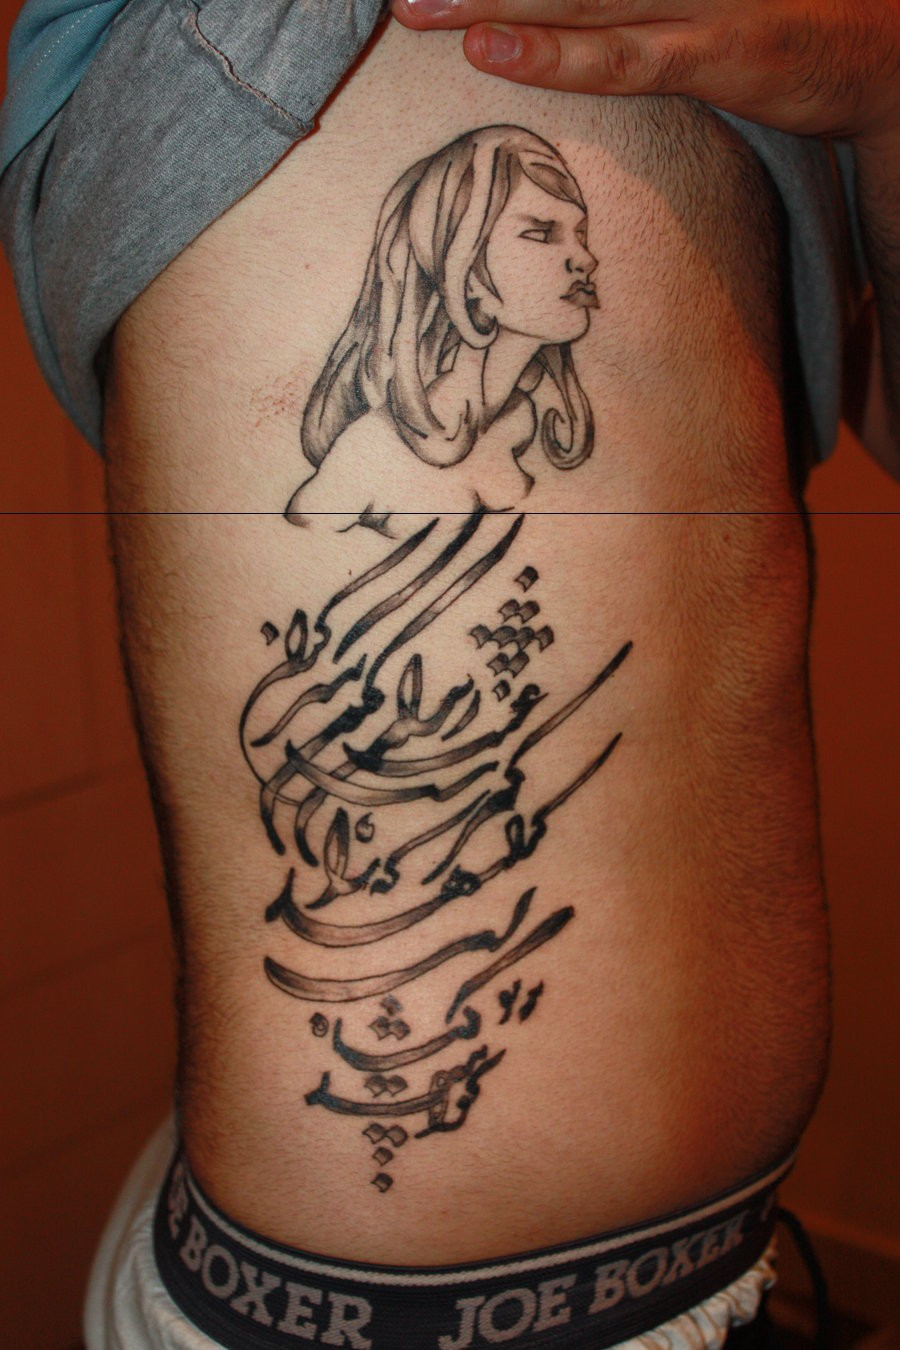 Calligraphy done by Asif Sultan at Karachi tattoo studio